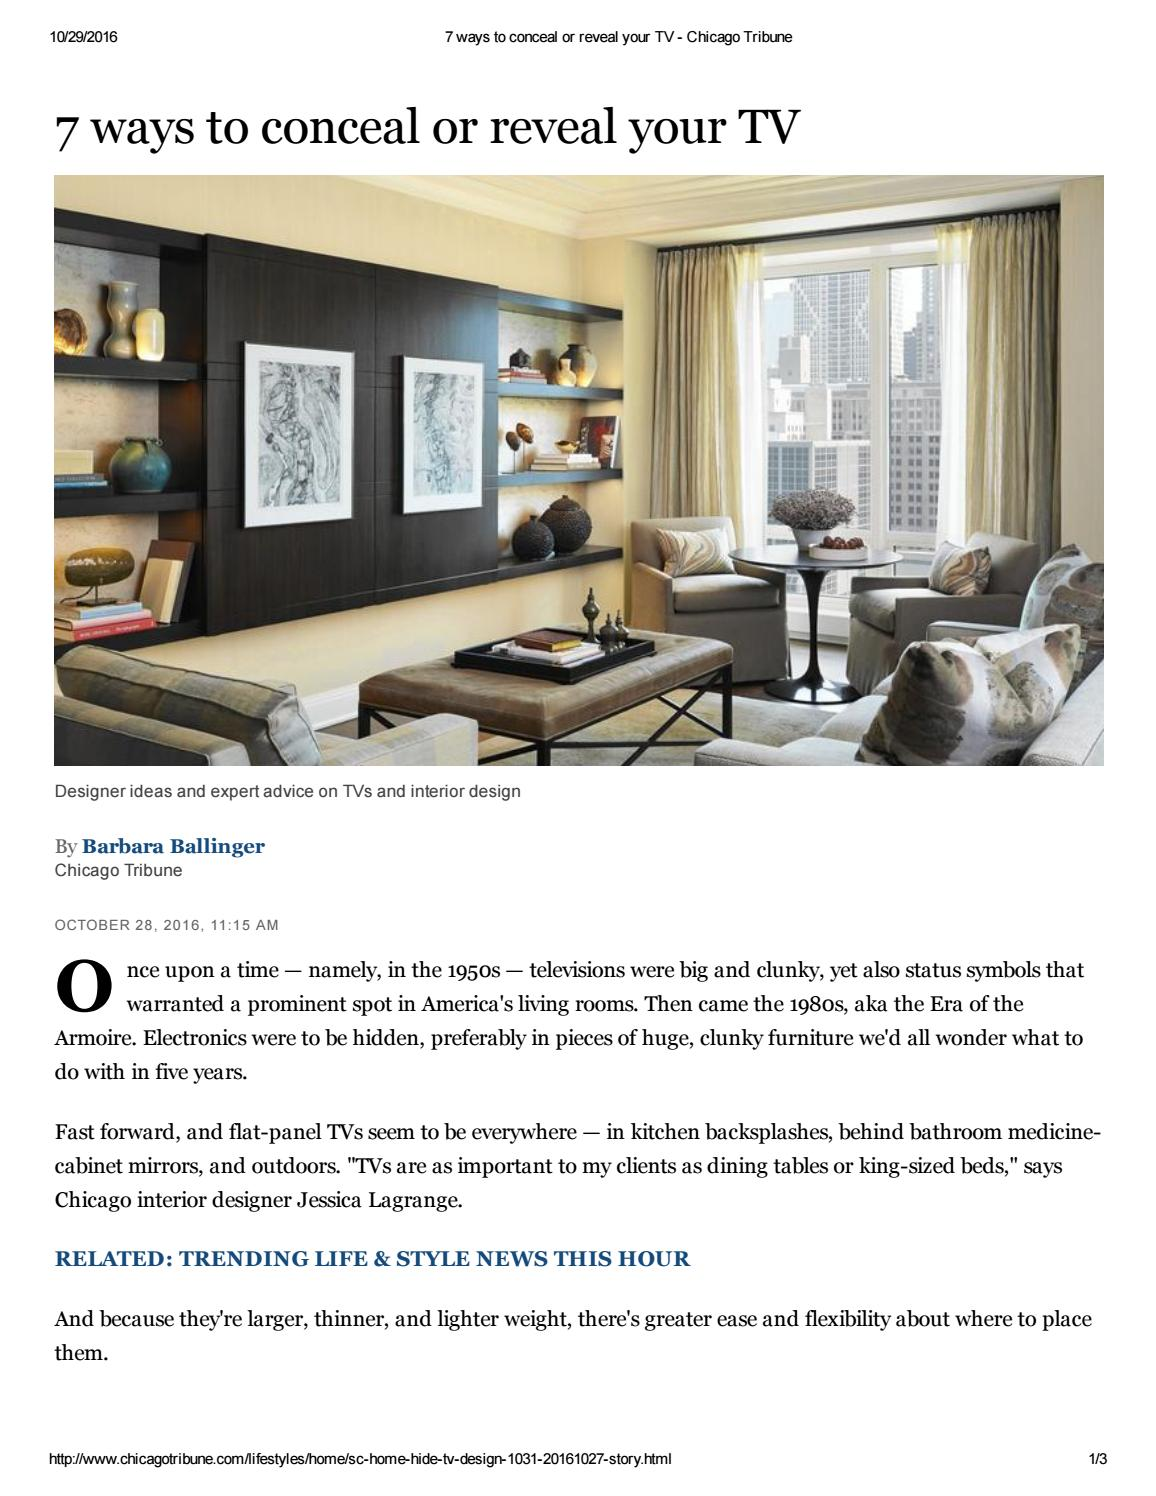 7 Ways to Conceal or Reveal Your TV - Chicago Tribune by Decorating Home Design Tv Html on spot color design, cvs design, interactive experience design, mets design, datatable design, page banner design, openoffice design, dvb design, pie graph design, theming design, ms word design, simple text design, interactive website design, datagrid design, civil 3d design, upload design, potoshop design, web design, company branding design, blockquote design,